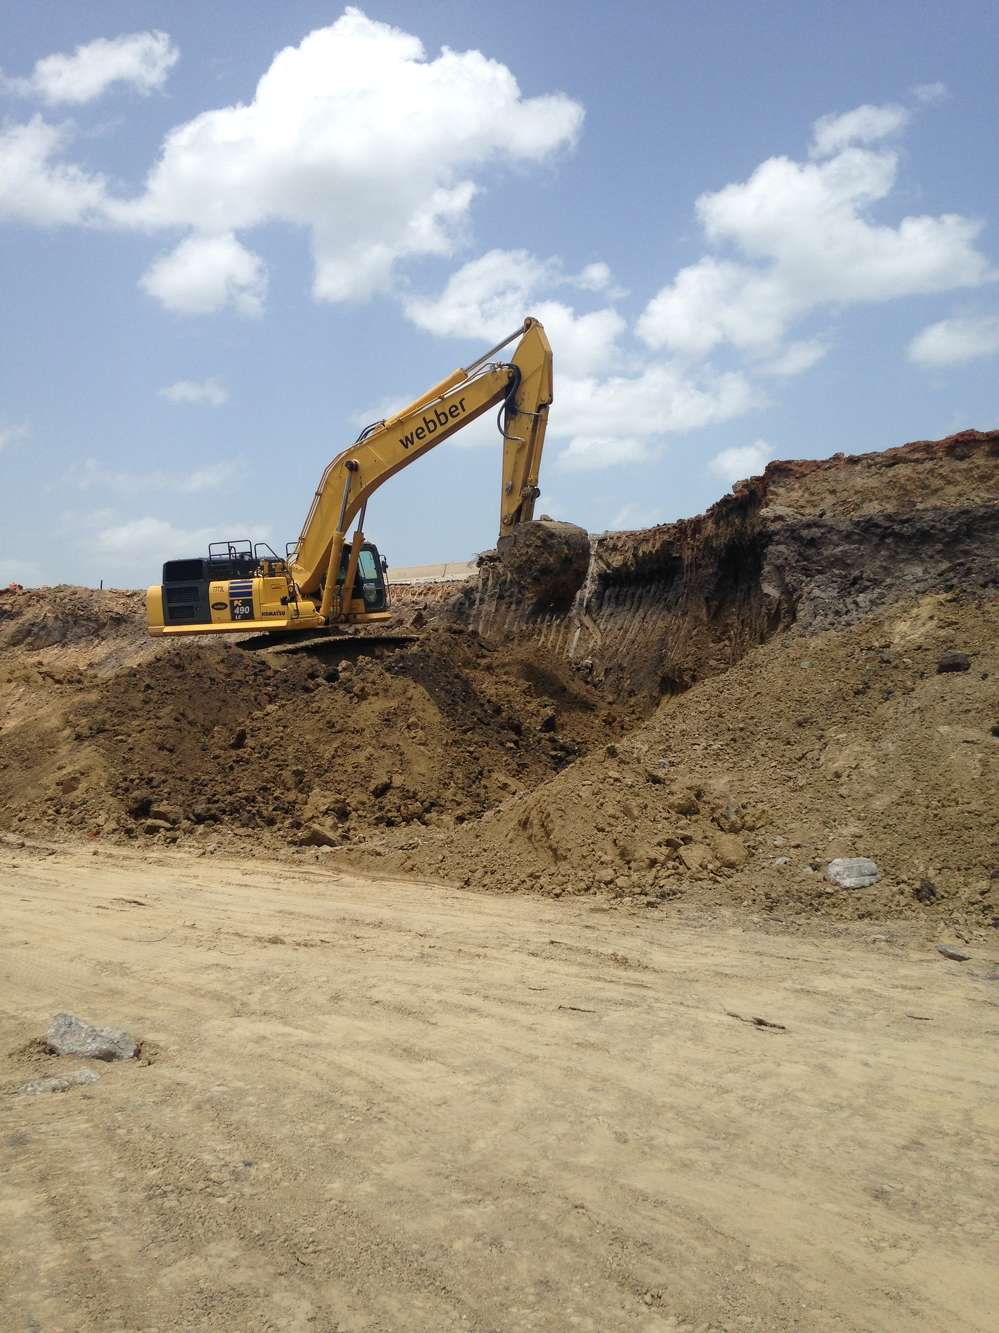 Webber LLC photo.  The projects are known as I-45 North, I-45 South and SH 31 Relief Route.